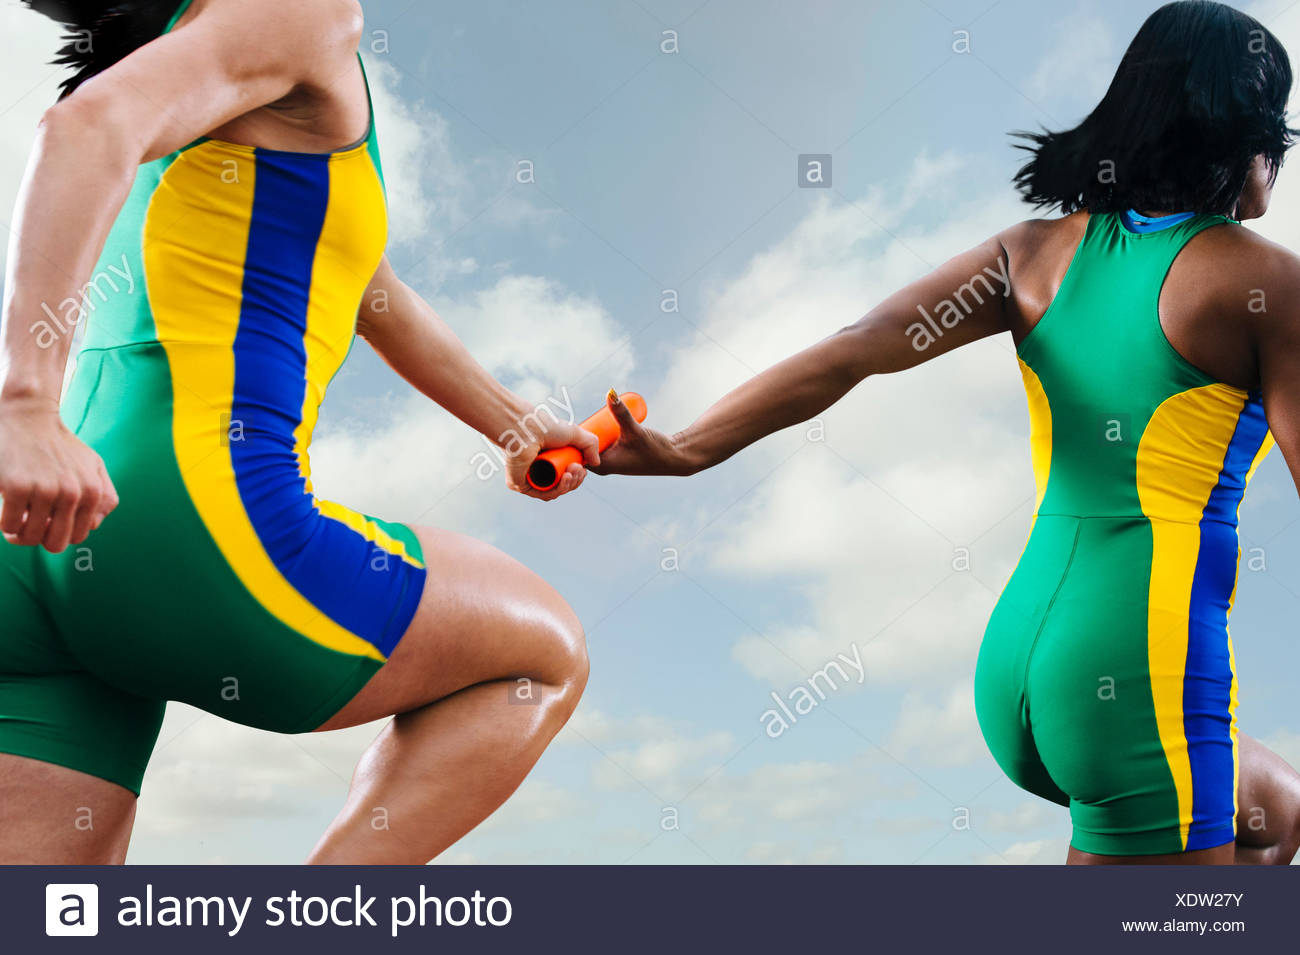 Two female relay athletes exchanging baton whilst running - Stock Image